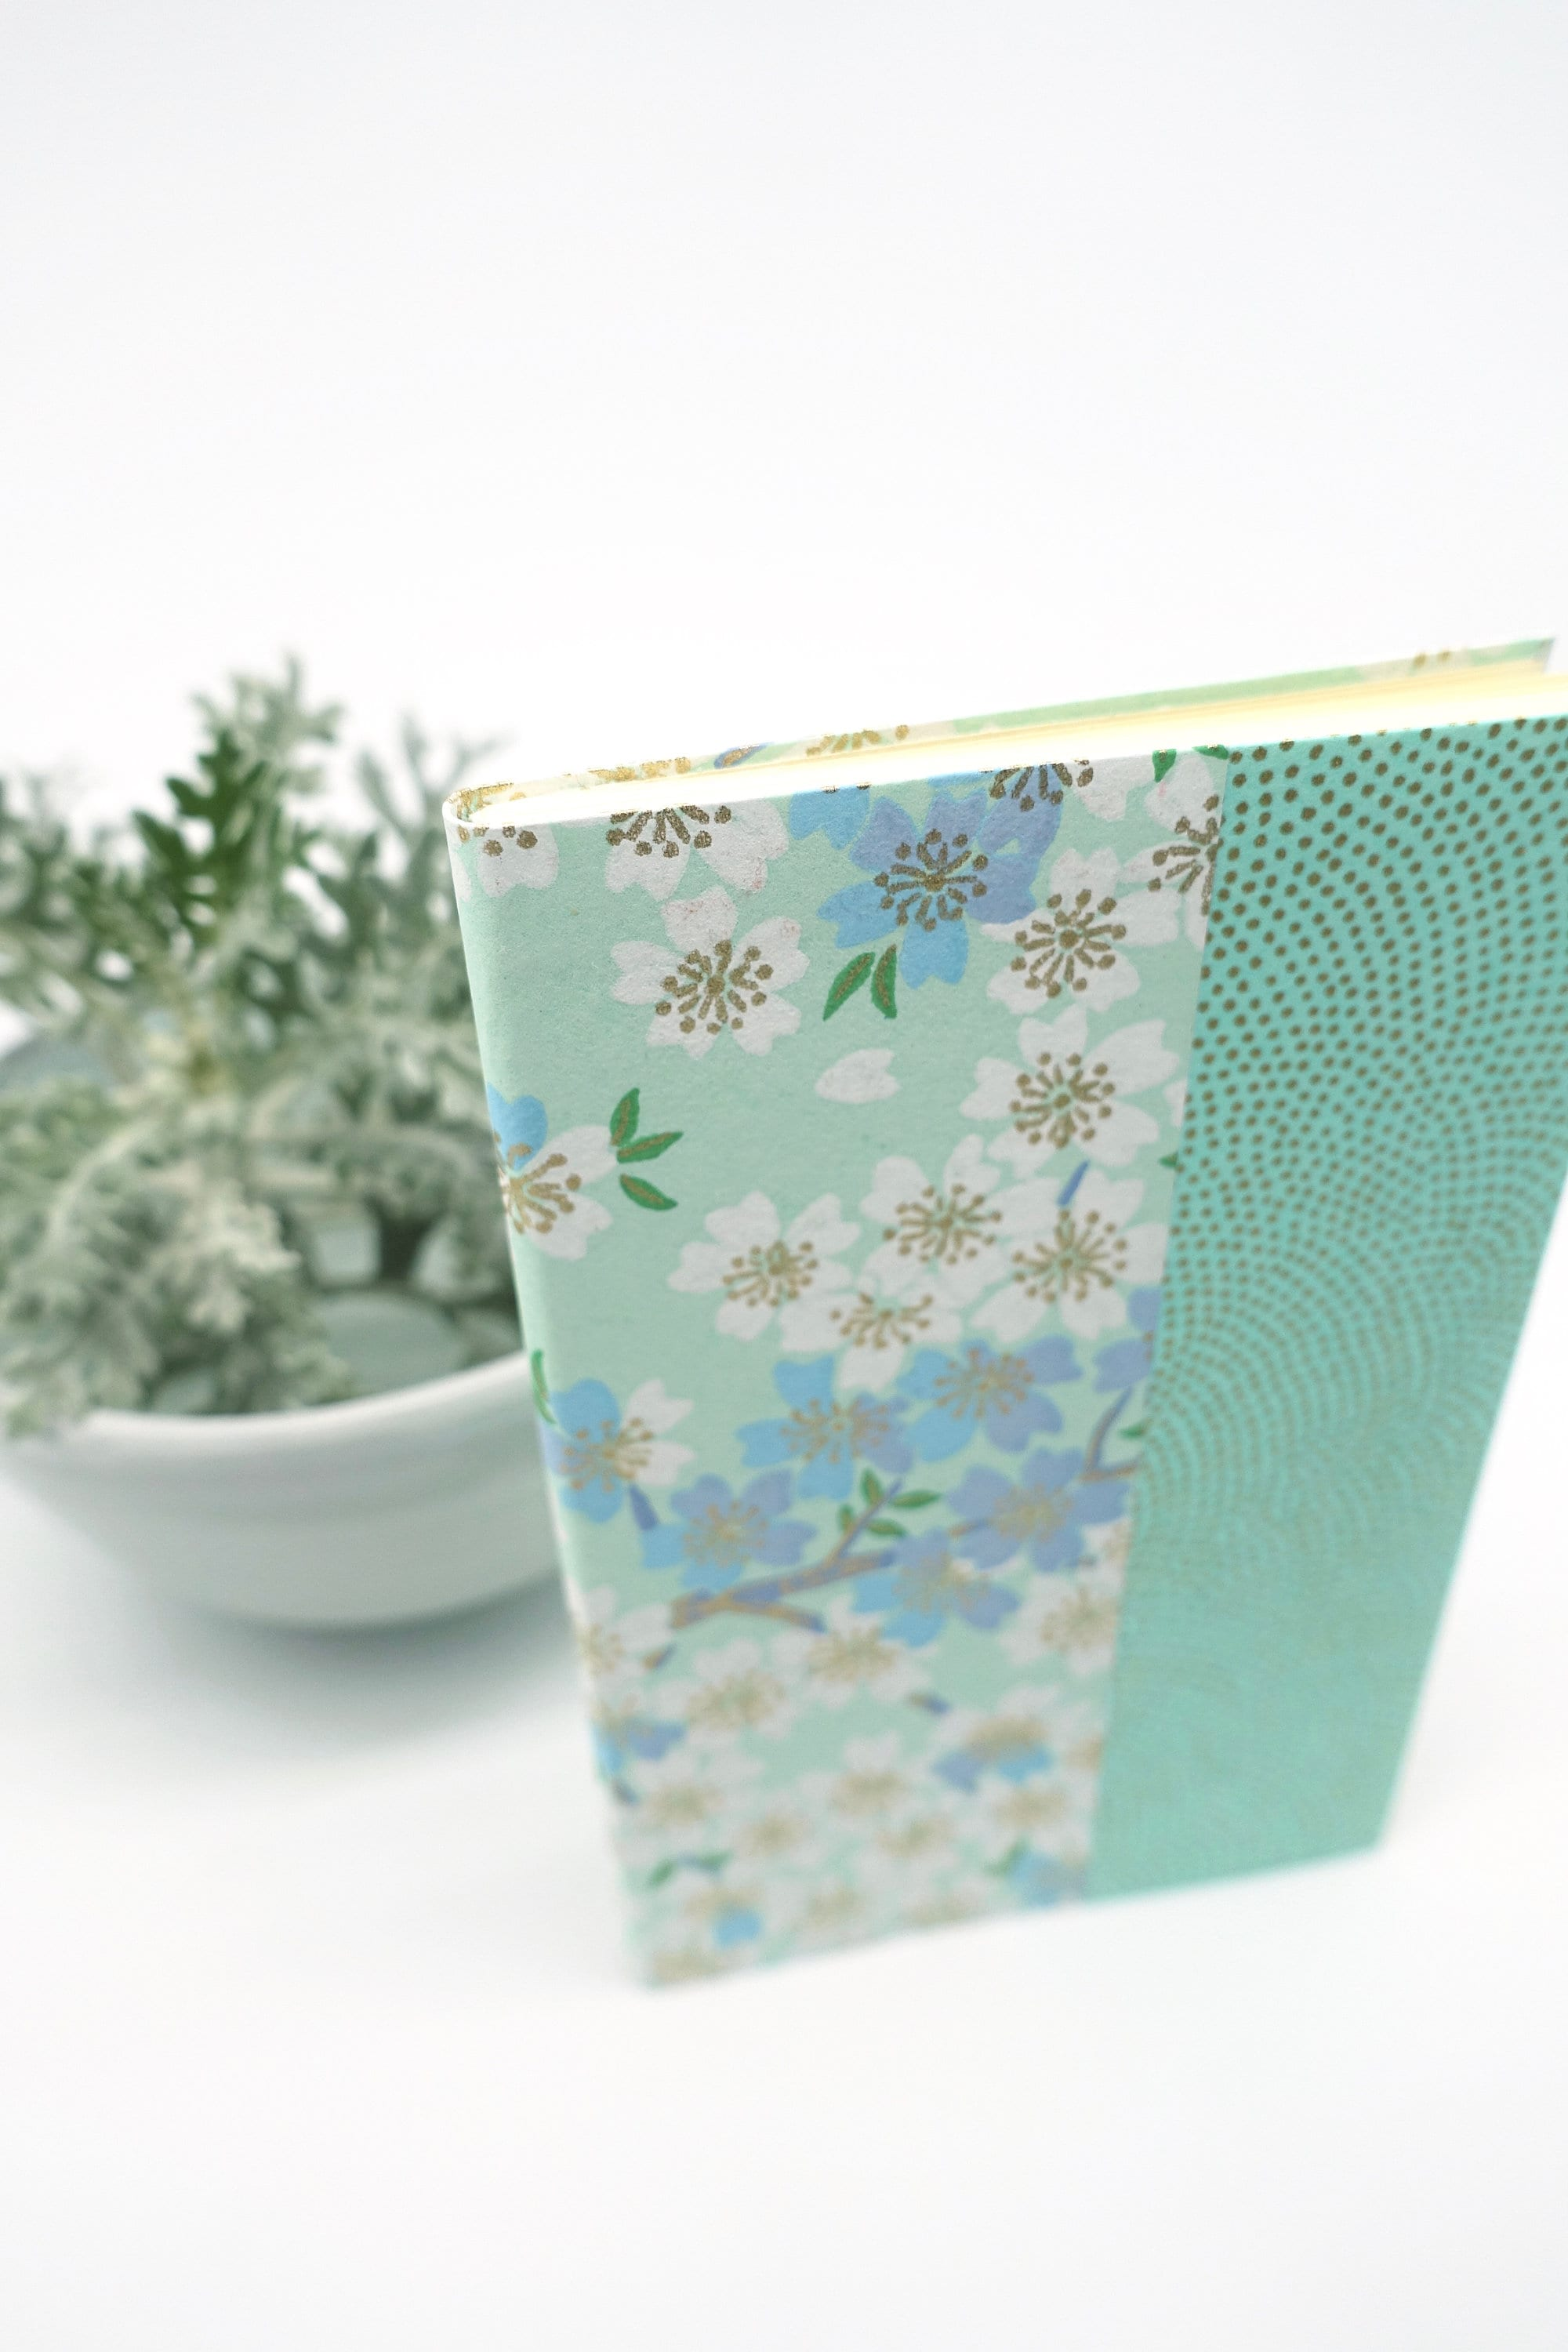 Medium Blank Japanese NOTEBOOK Journal Diary Green or Lilac Japanese Paper Cover